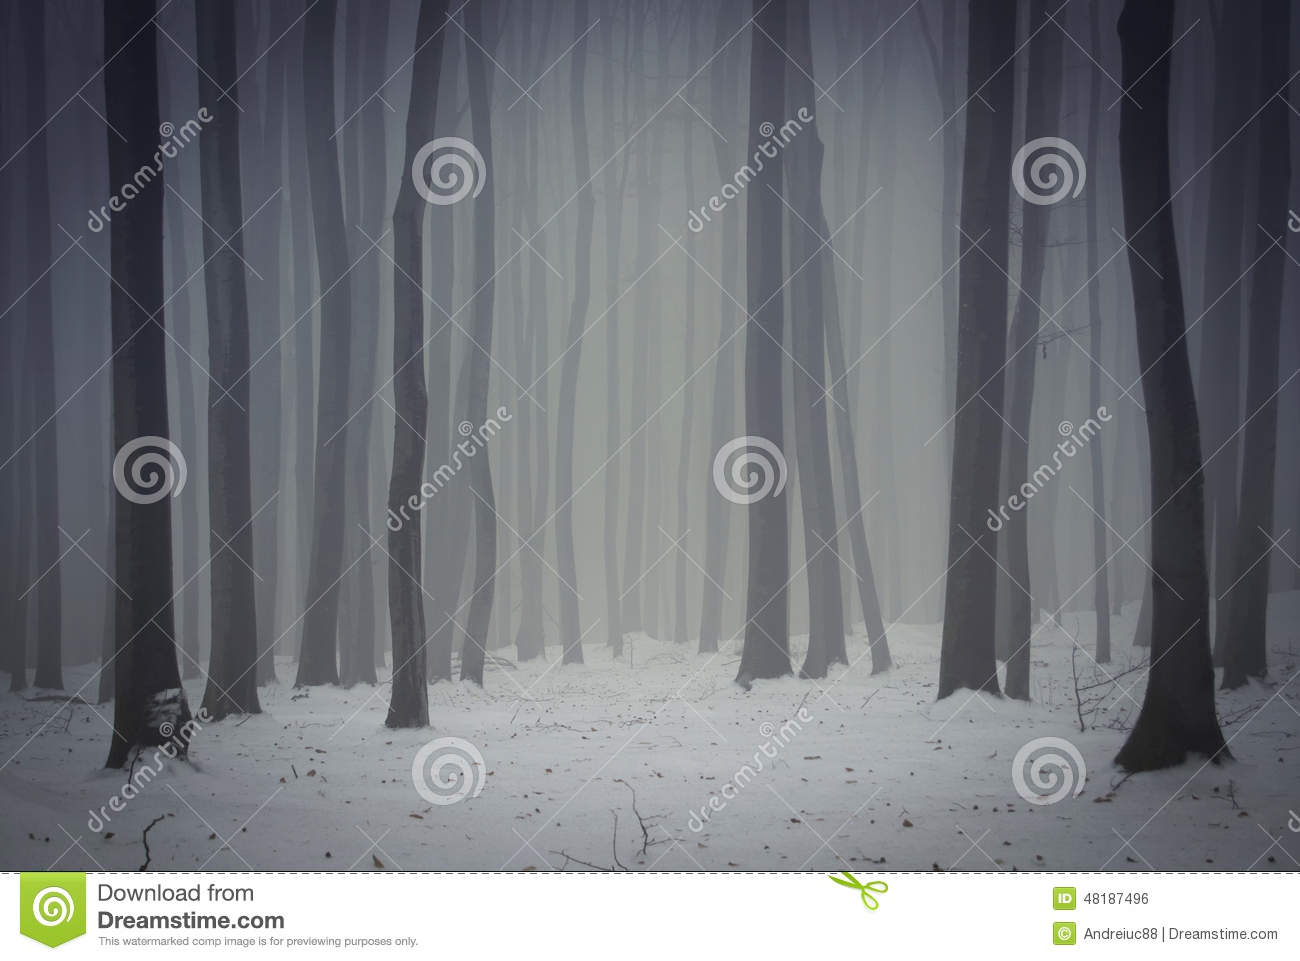 mysterious forest in winter - photo #10